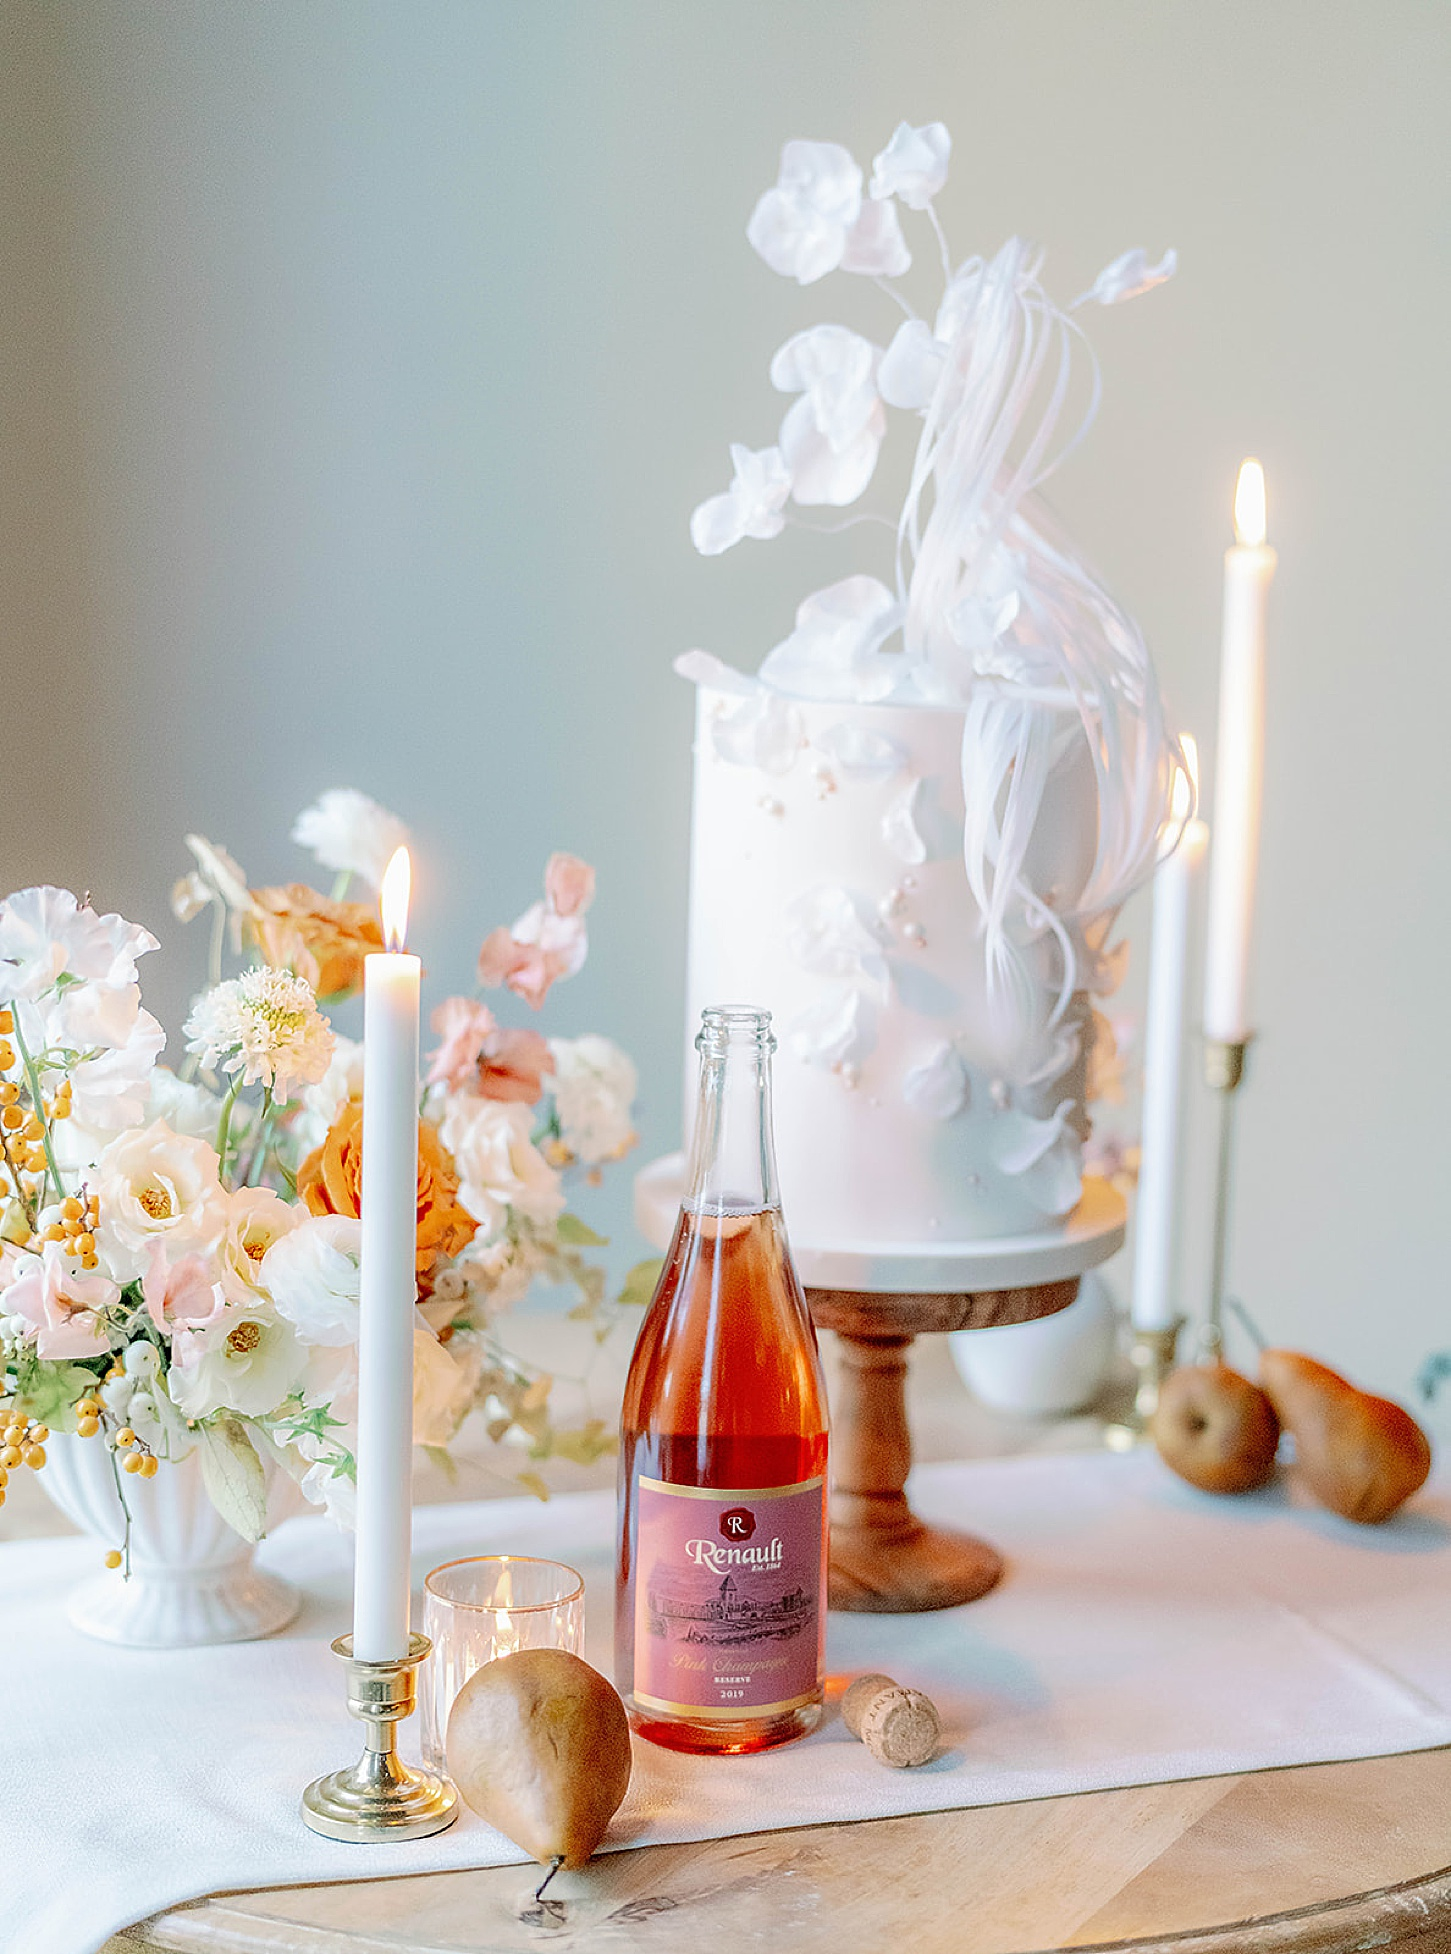 Renault Winery Wedding Photography by Magdalena Studios Magi Fisher x Renault Editorial 0055